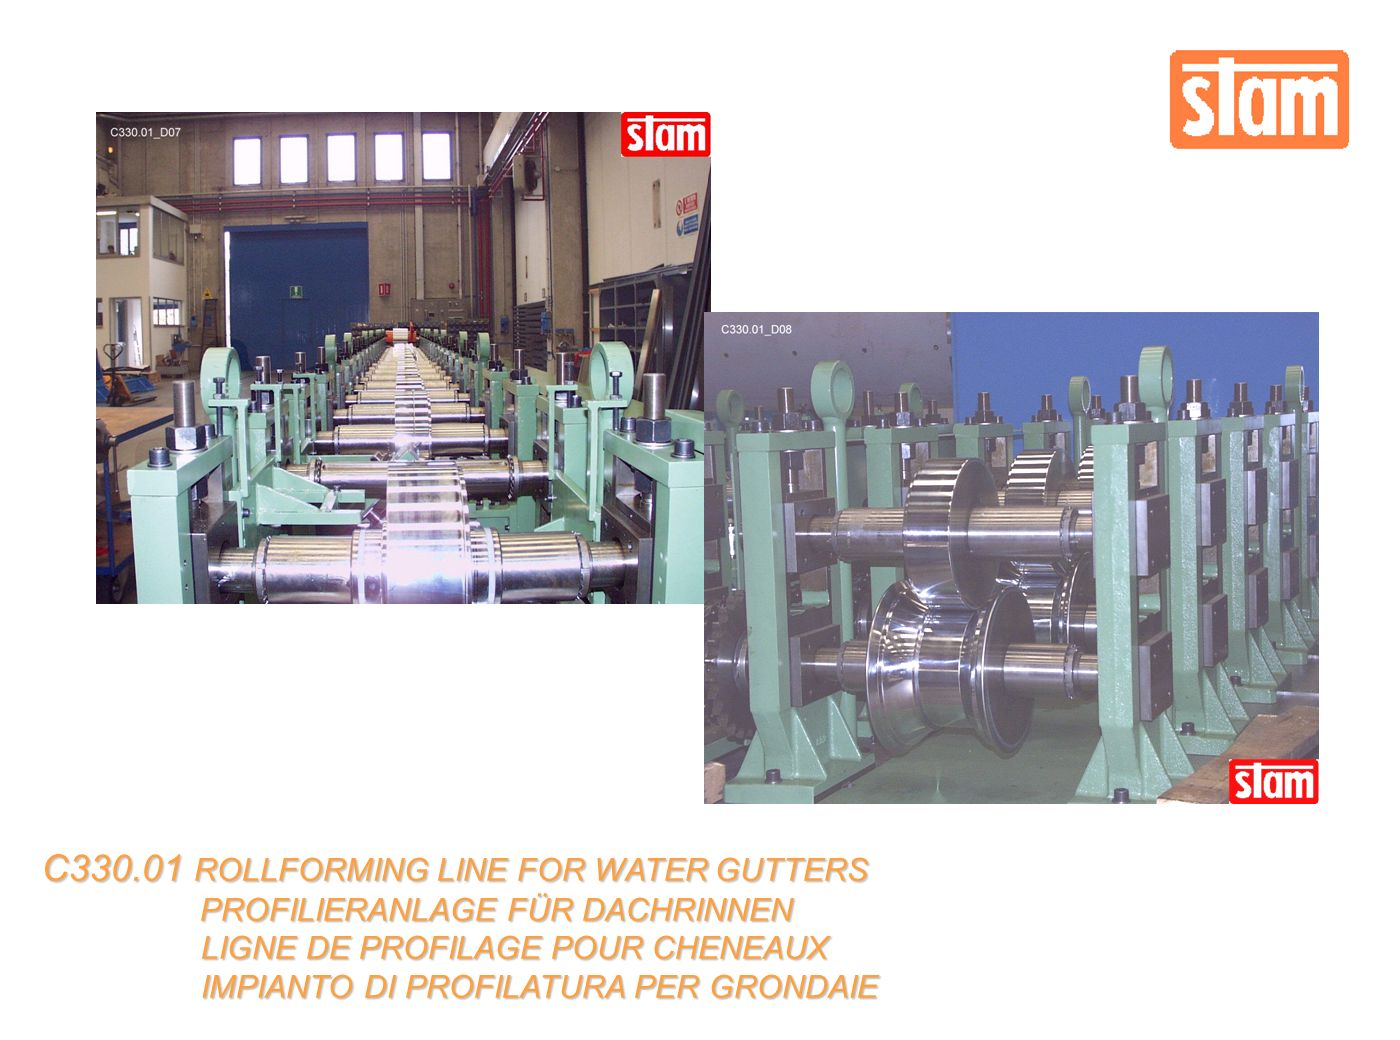 C ROLLFORMING LINE FOR WATER GUTTERS PROFILIERANLAGE FÜR DACHRINNEN PROFILIERANLAGE FÜR DACHRINNEN LIGNE DE PROFILAGE POUR CHENEAUX LIGNE DE PROFILAGE POUR CHENEAUX IMPIANTO DI PROFILATURA PER GRONDAIE IMPIANTO DI PROFILATURA PER GRONDAIE